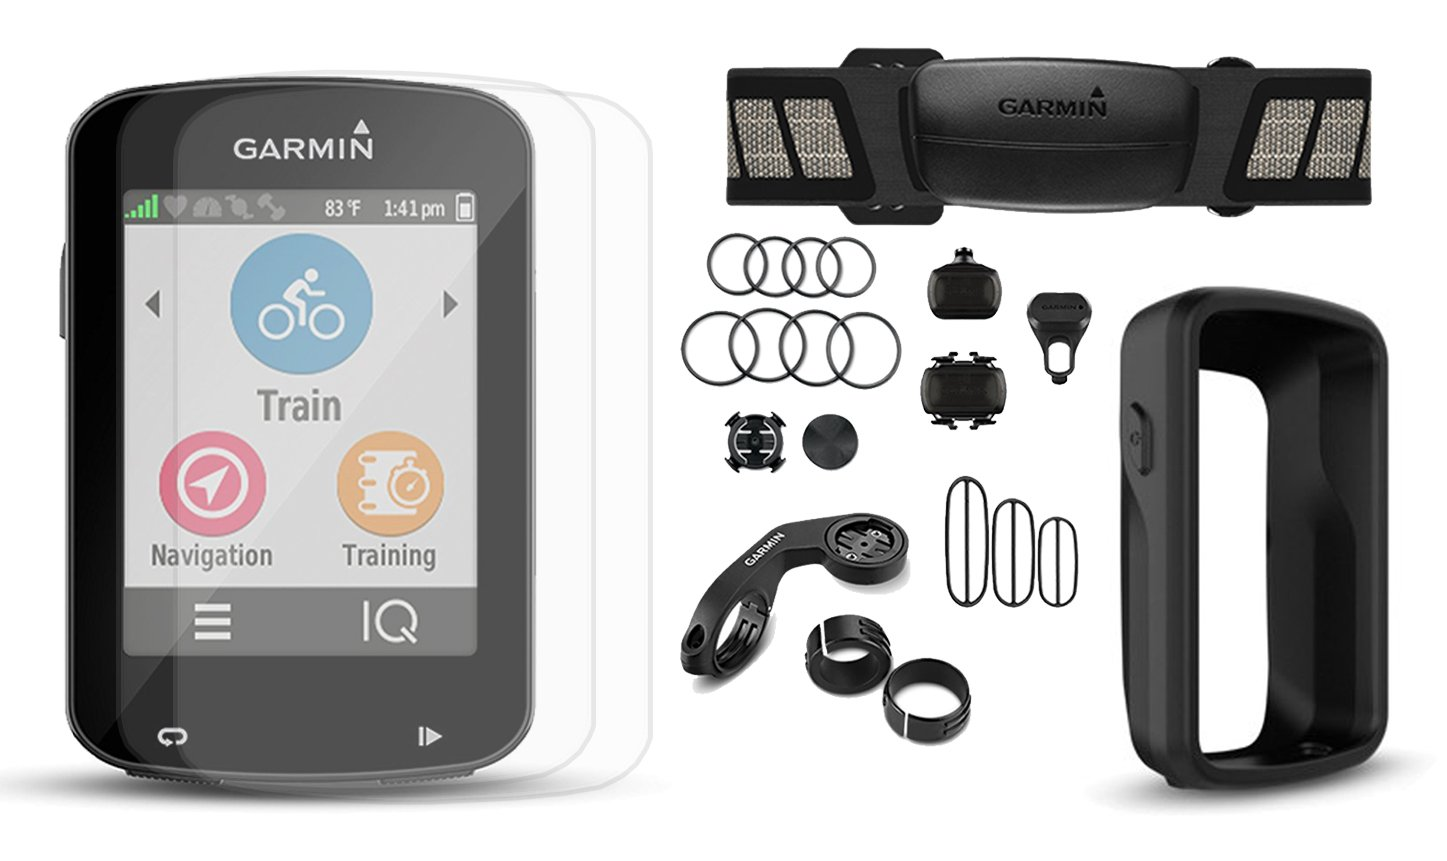 Garmin Edge 820 CYCLE BUNDLE with Garmin Chest Strap HRM, Cadence & Speed Sensors, PlayBetter Portable USB Charger & Hard Carrying Case, Bike Mounts, USB Cable | Touchscreen Display, GPS Bike Computer by PlayBetter